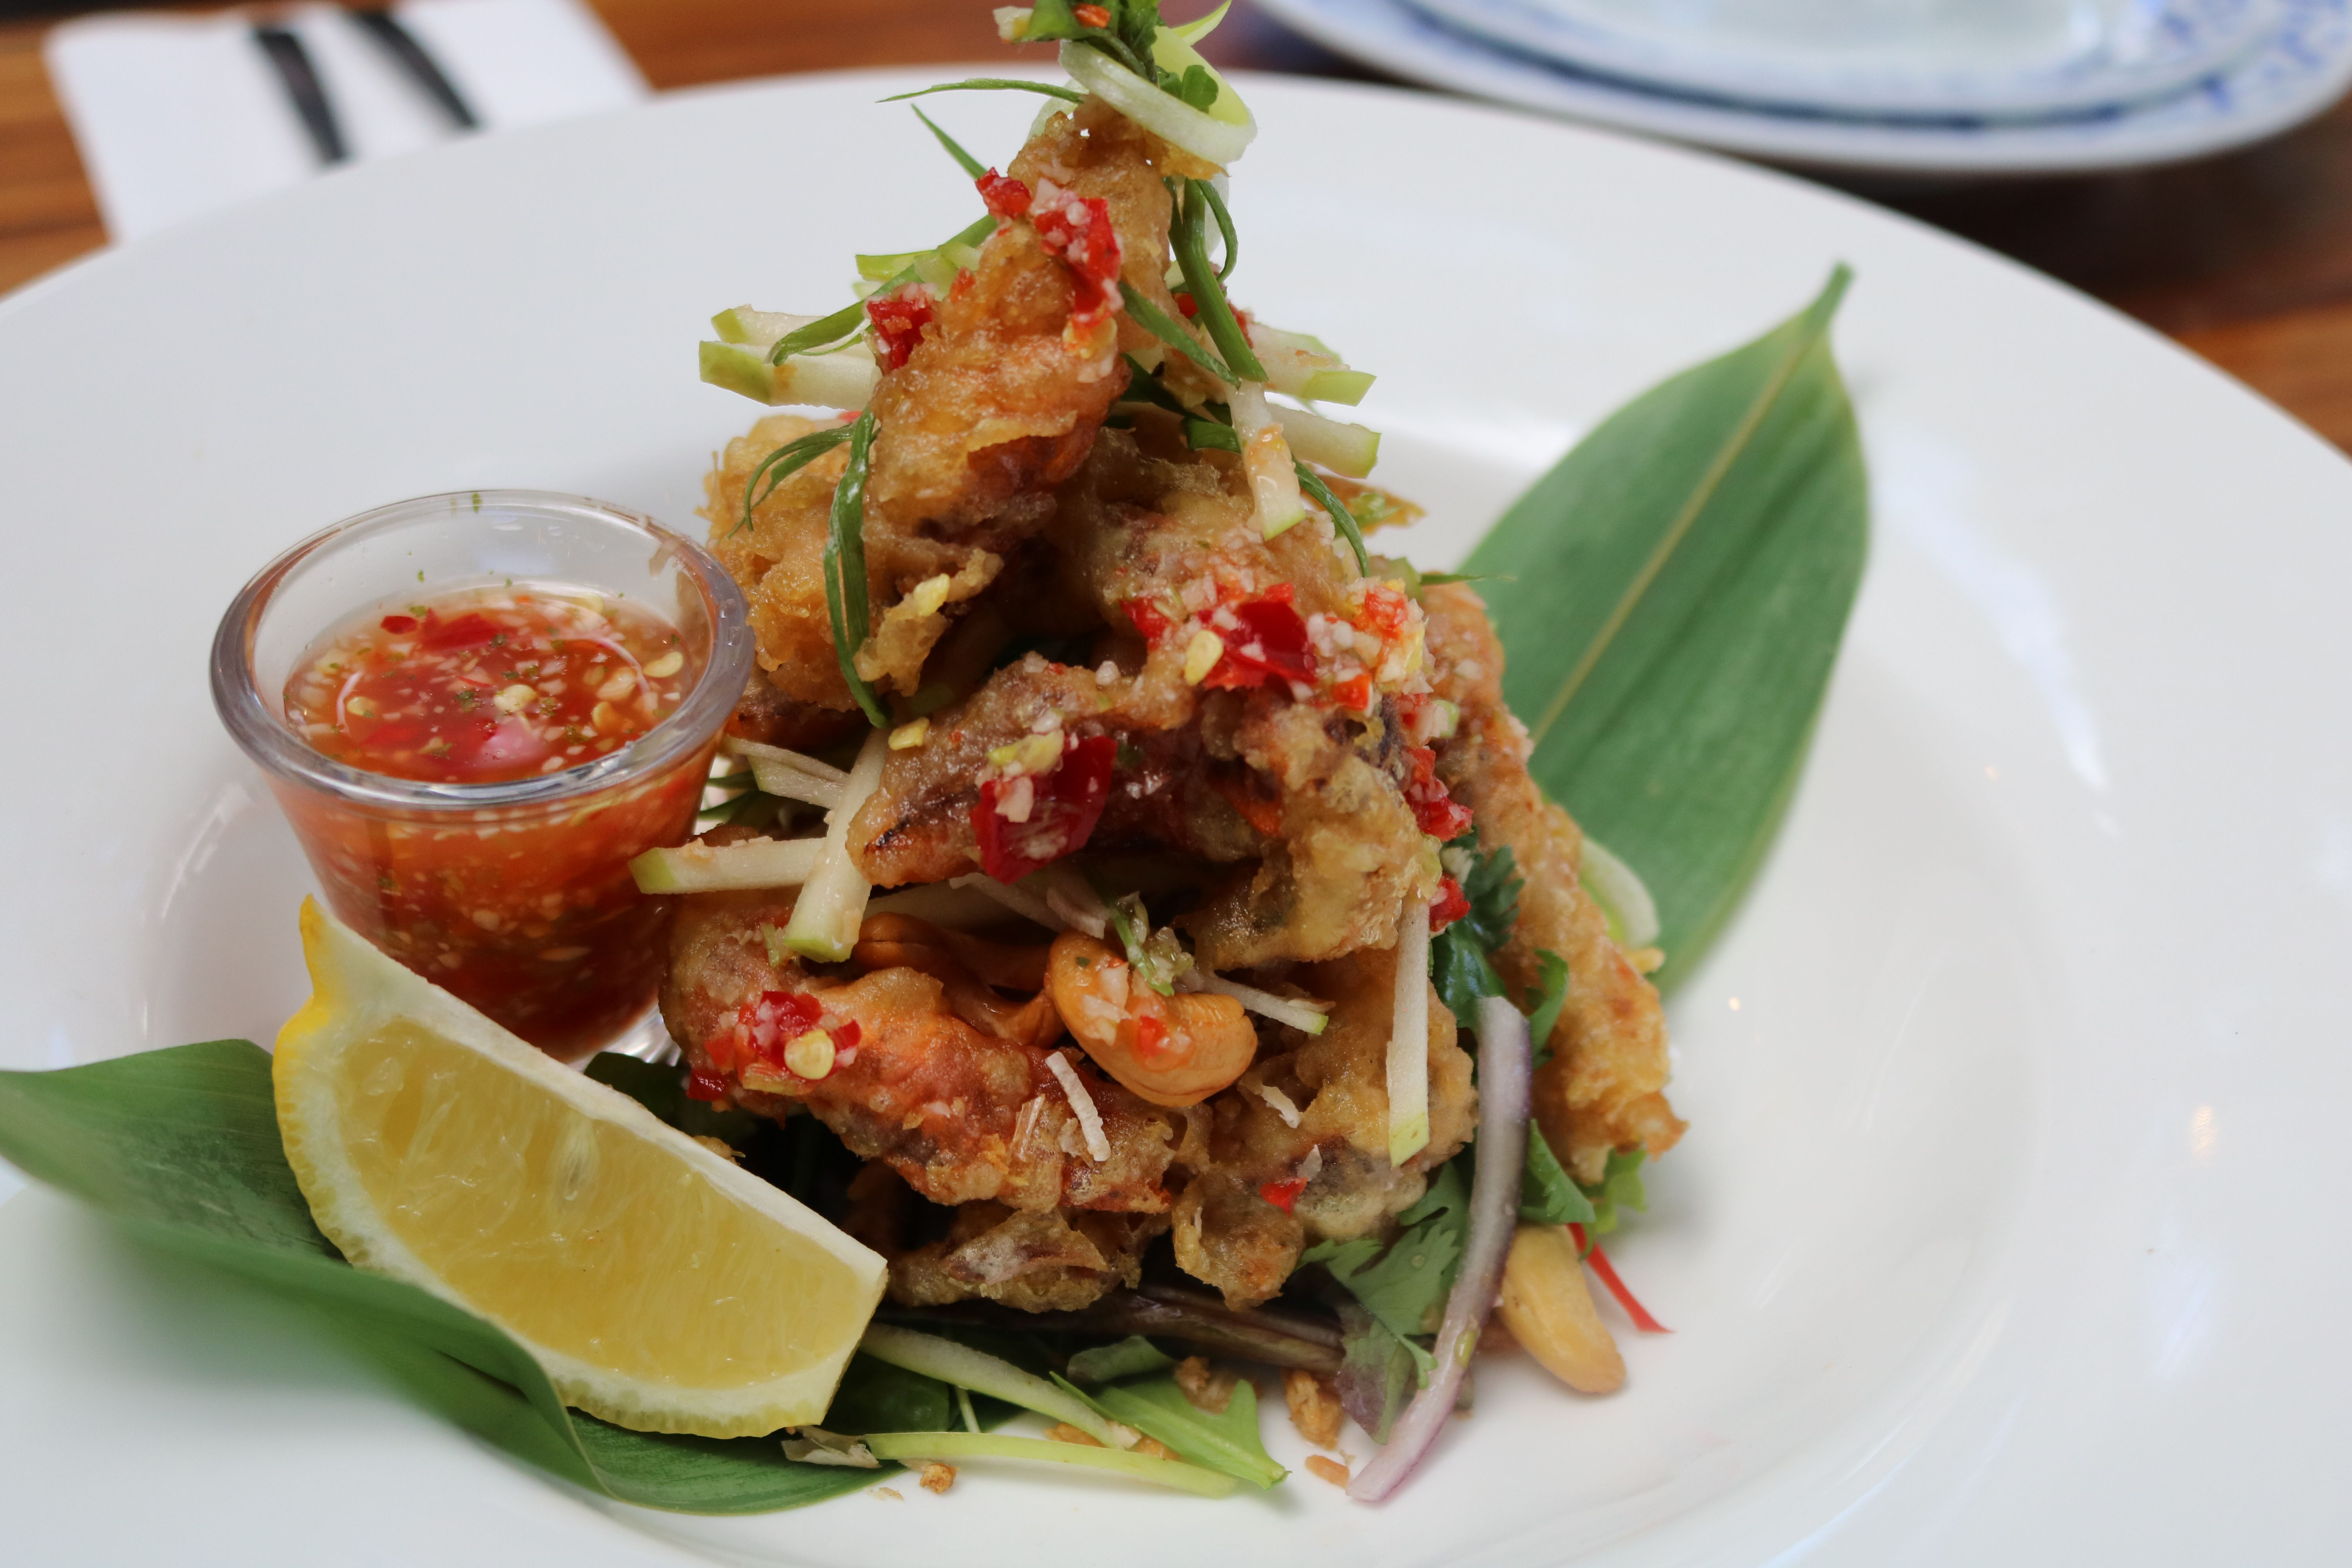 Soft shell crab with green apple salad